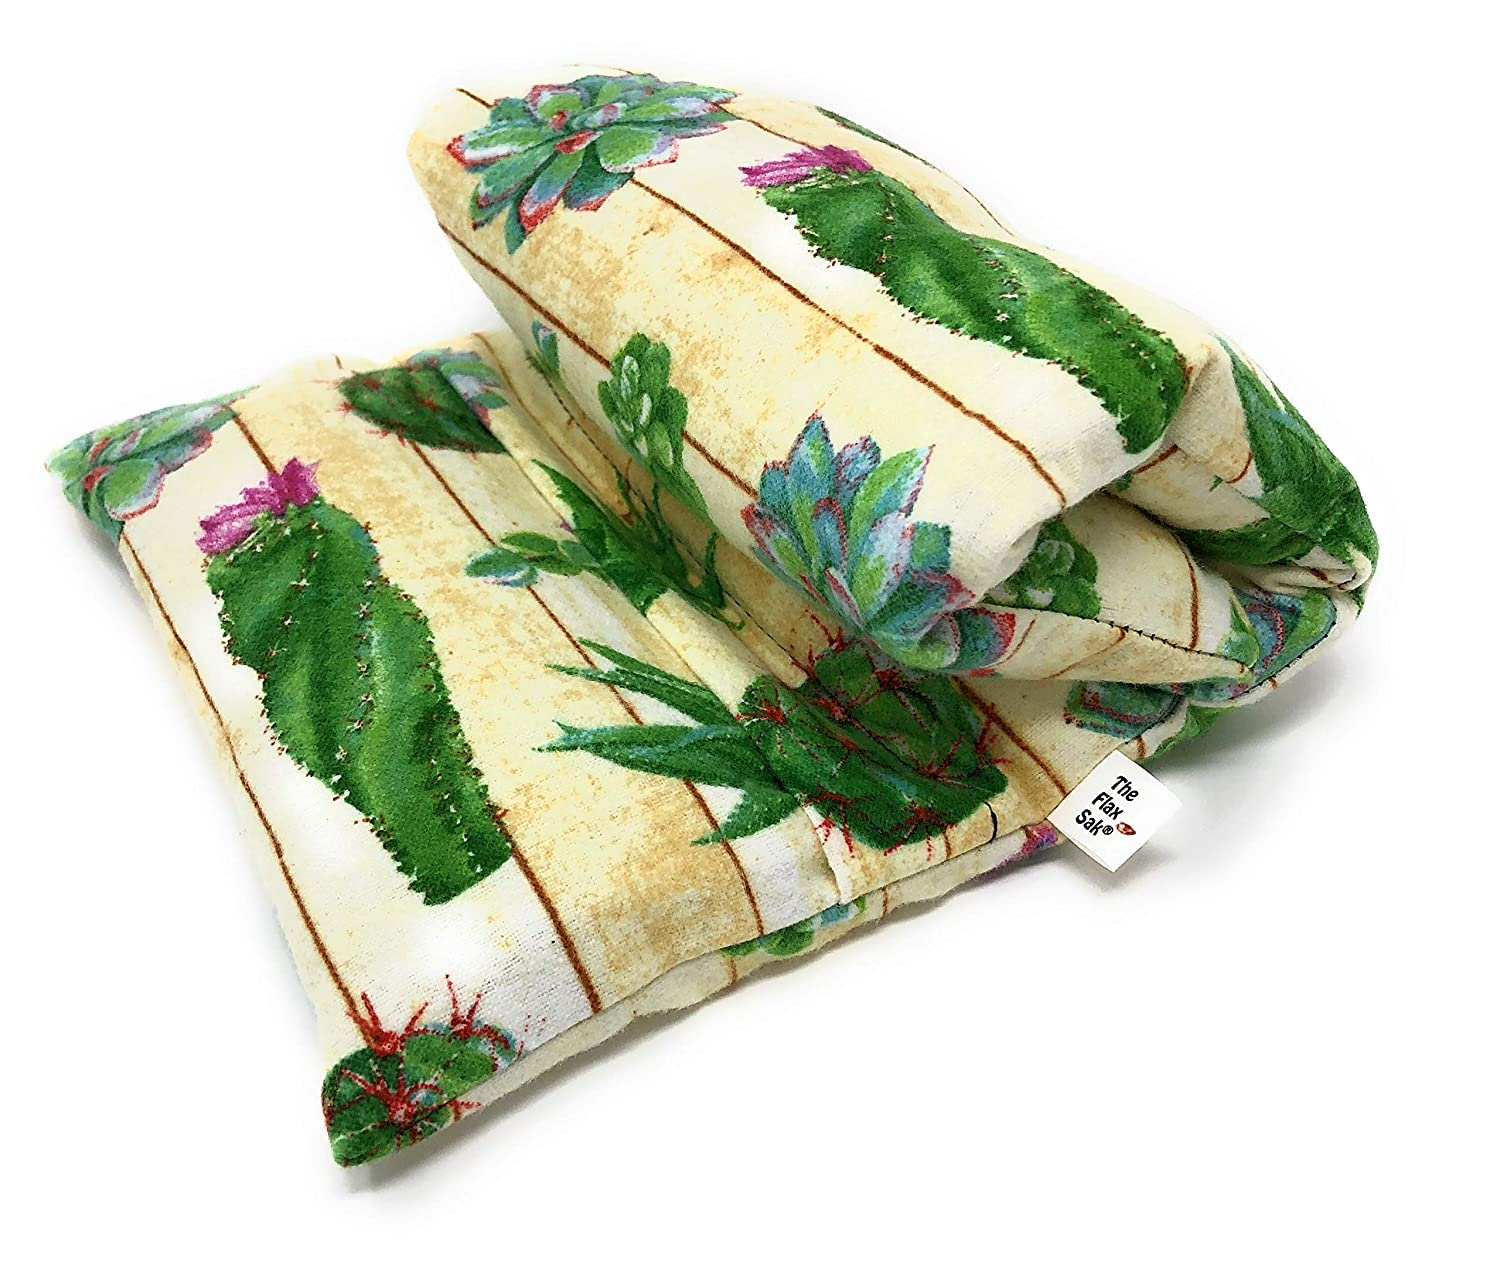 Stomach Cramp Heating Pad | Microwavable | Hot and Cold Packs | Large Lavender | Succulents by Flax Sak